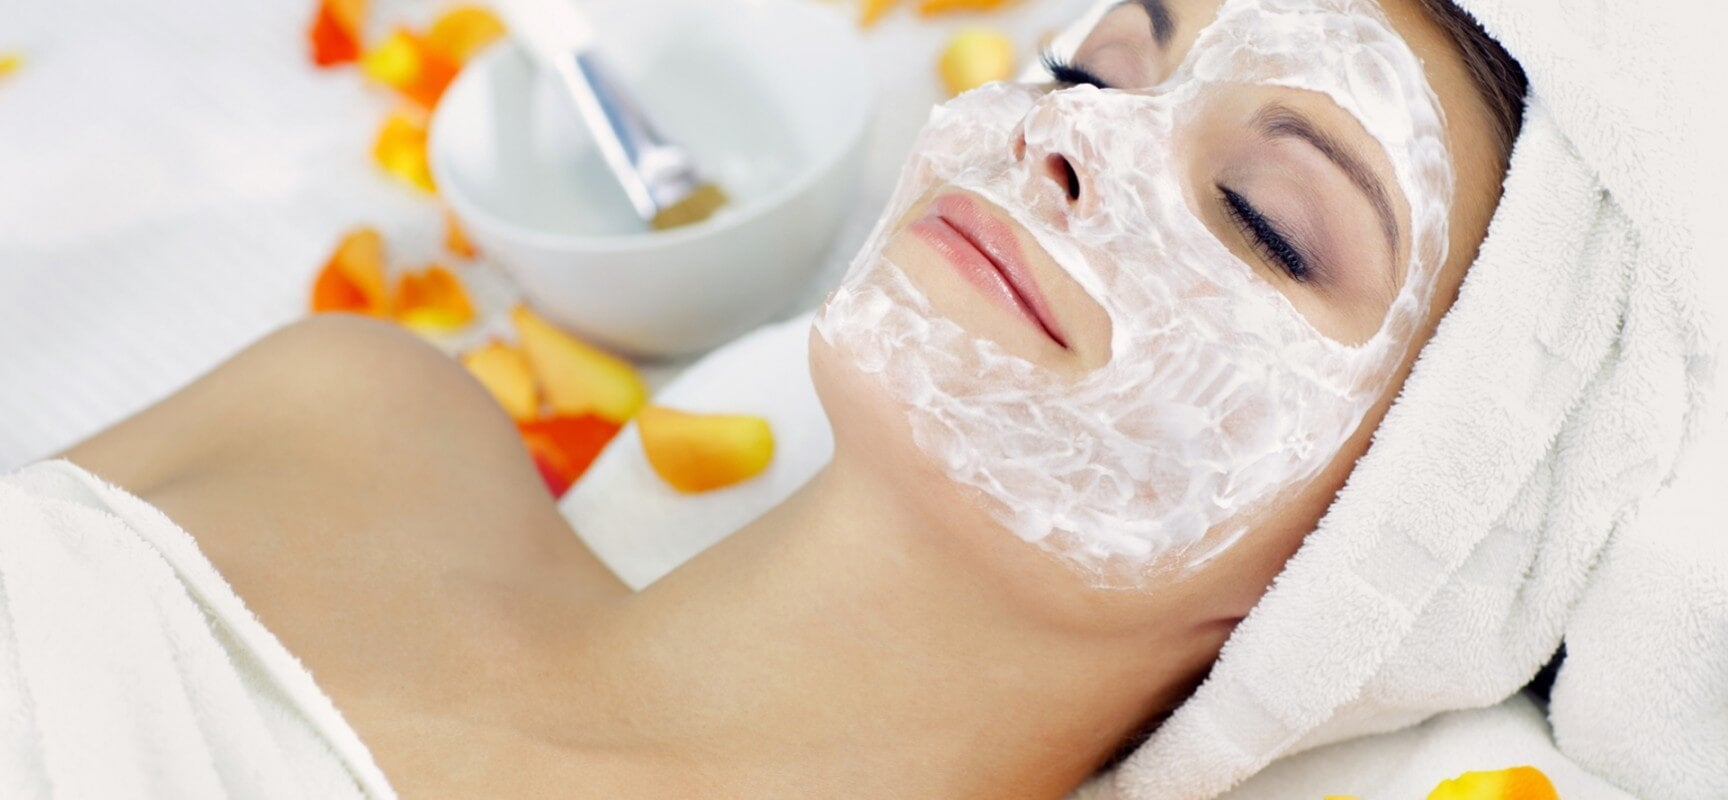 Gelatin mask for deep hydration